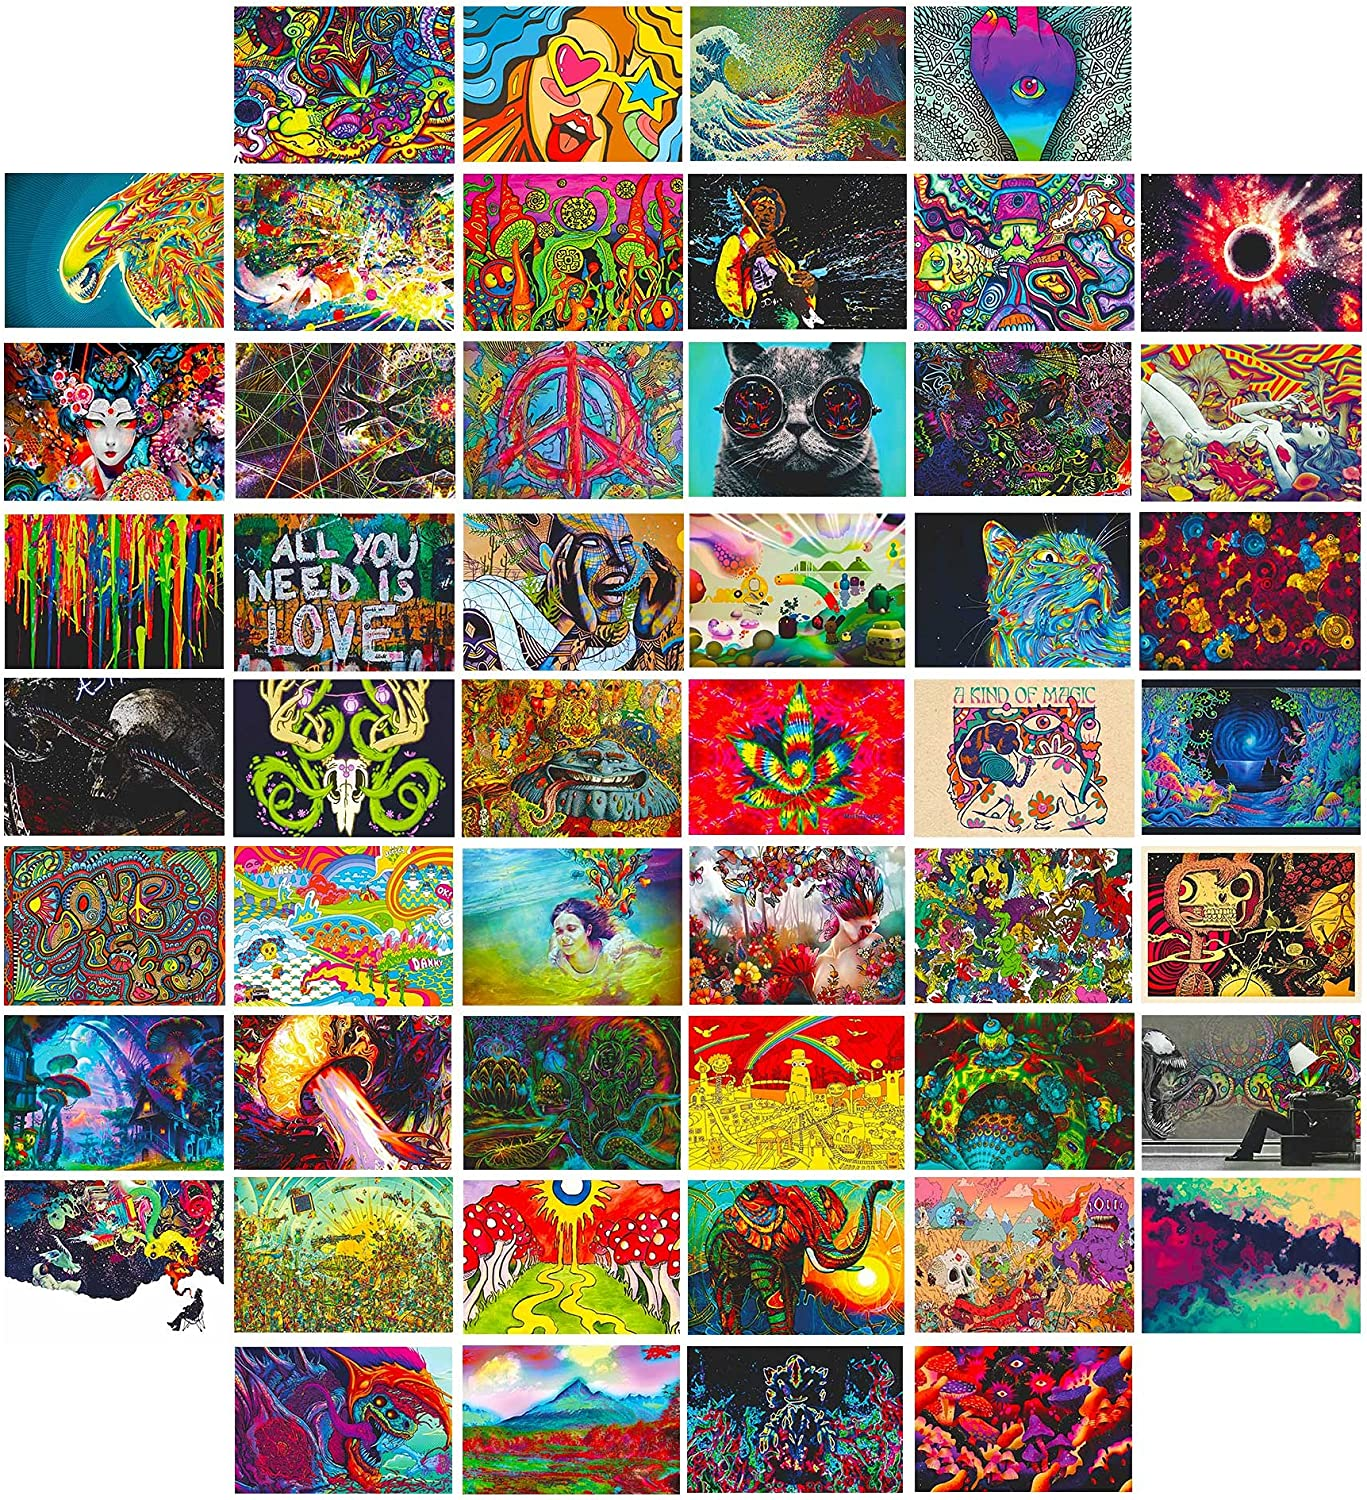 Hippie Trippy Drippy Wall Images Aesthetic Wall Collage Kit Aesthetic Pictures Vintage, Trippy Hippie Room Decor, Retro Room Decor For Girls Boys, Trendy Small Posters For Dorm Decor, Bedroom Decor For Teen Girl